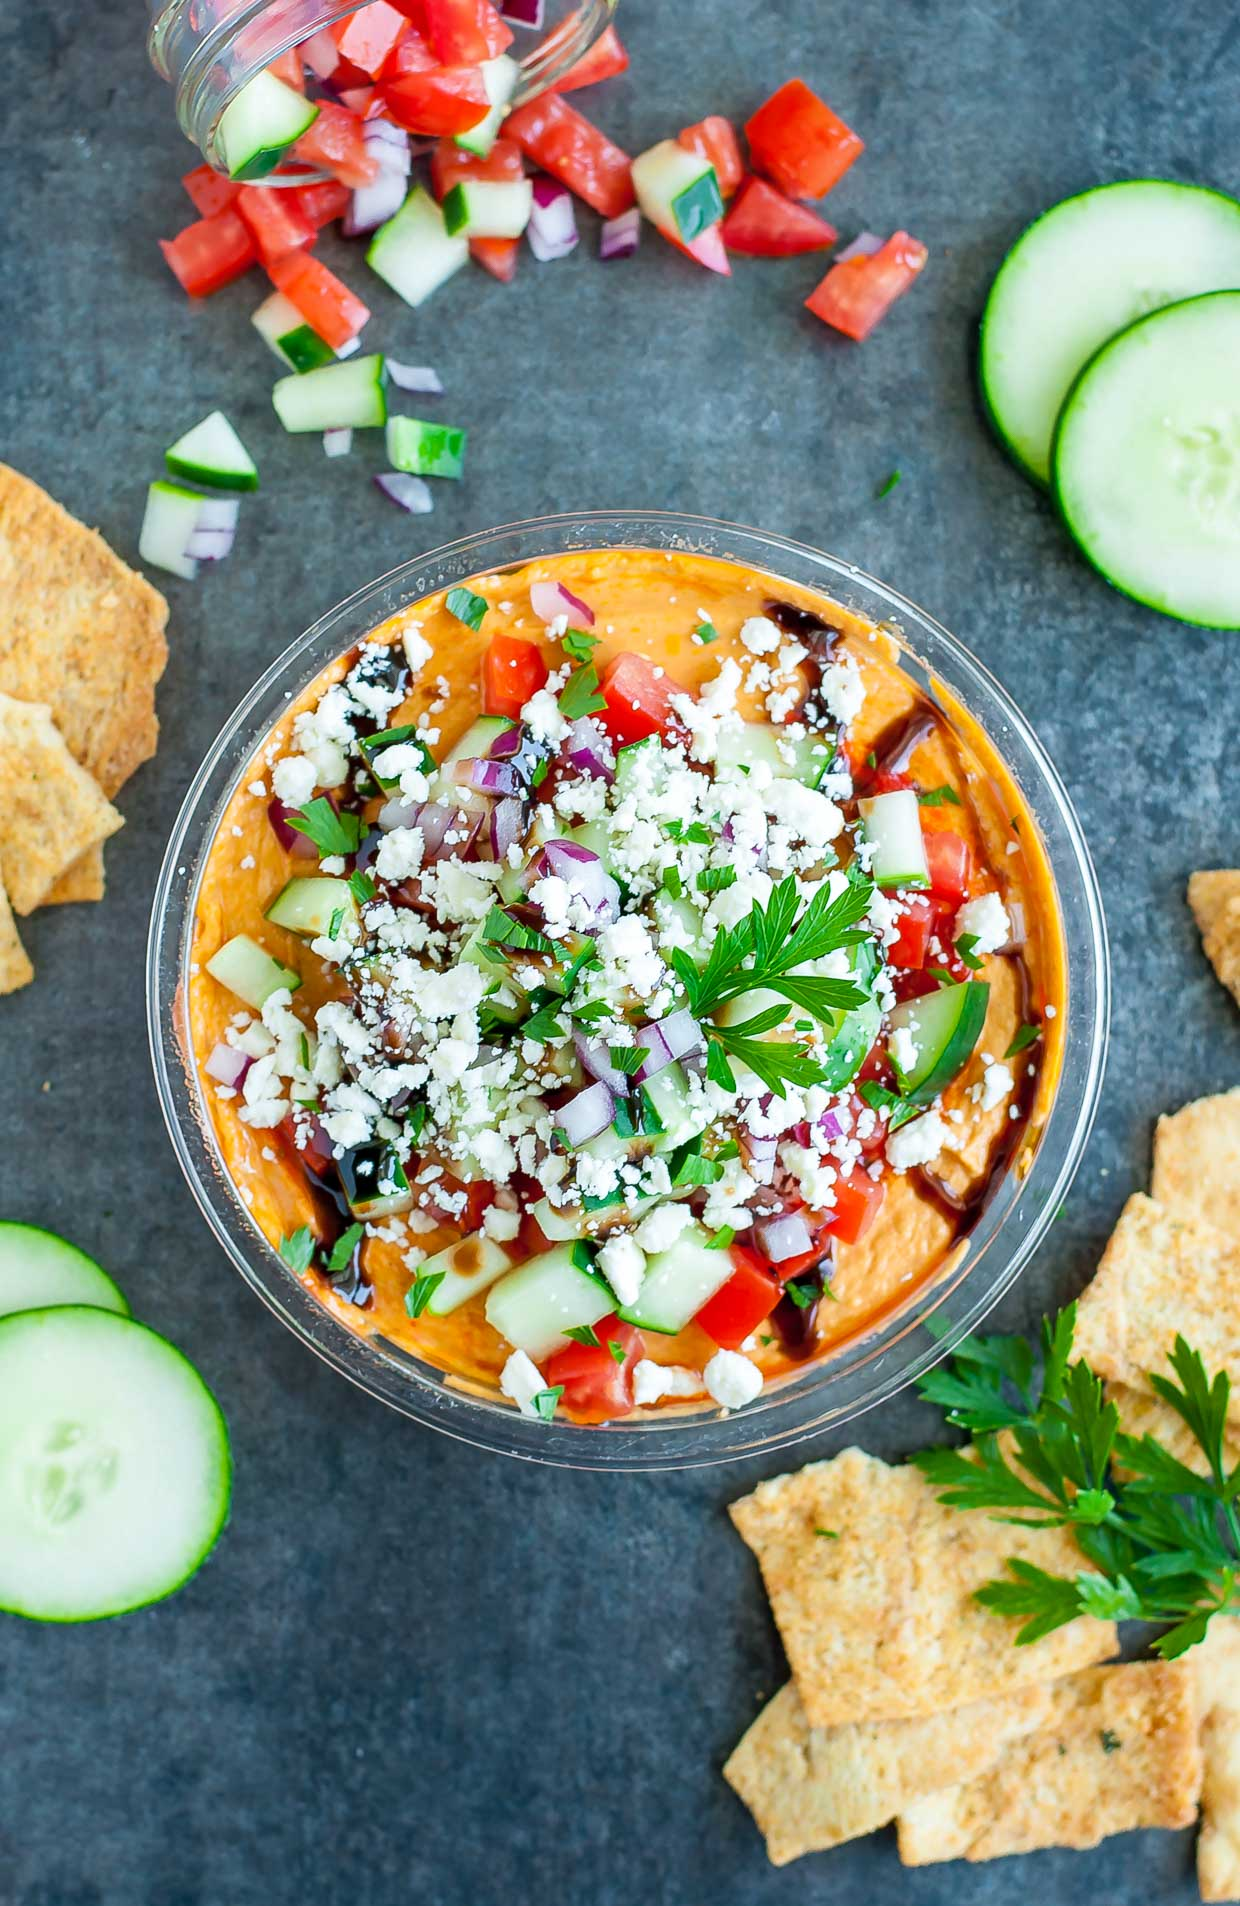 party hummus. Tasty hummus is piled high with a mountain of toppings including feta, cucumber, onion, parsley, and drizzled with a sweet and savory balsamic glaze.